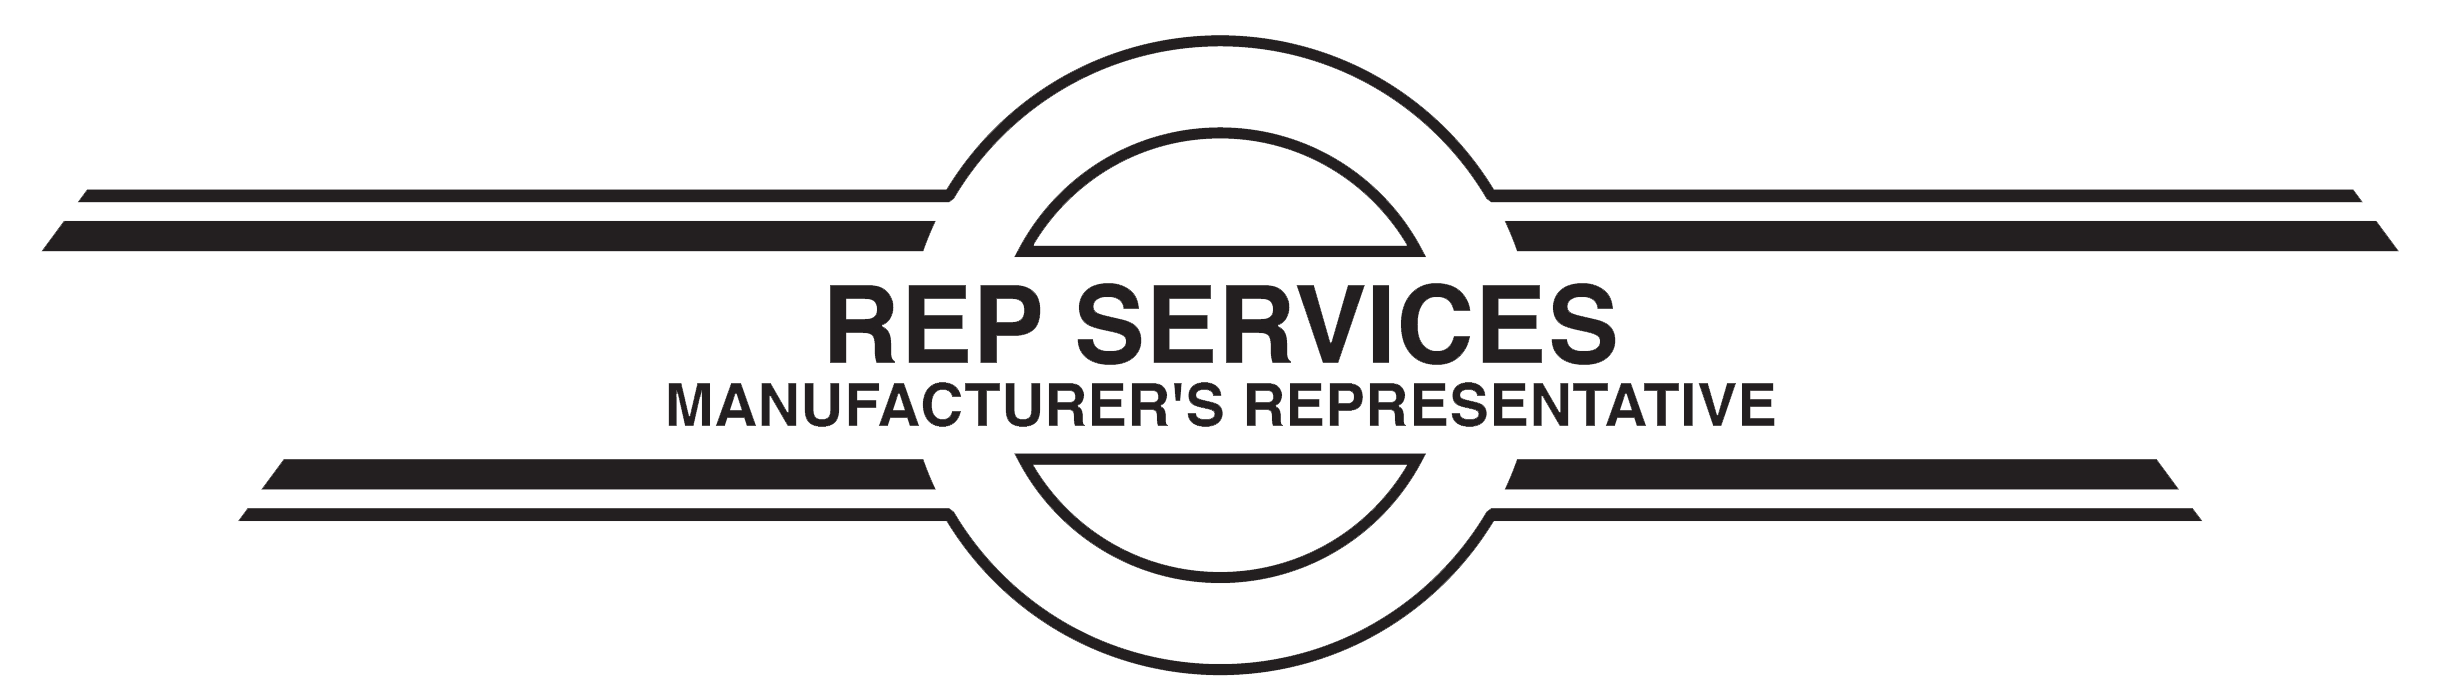 Rep Services